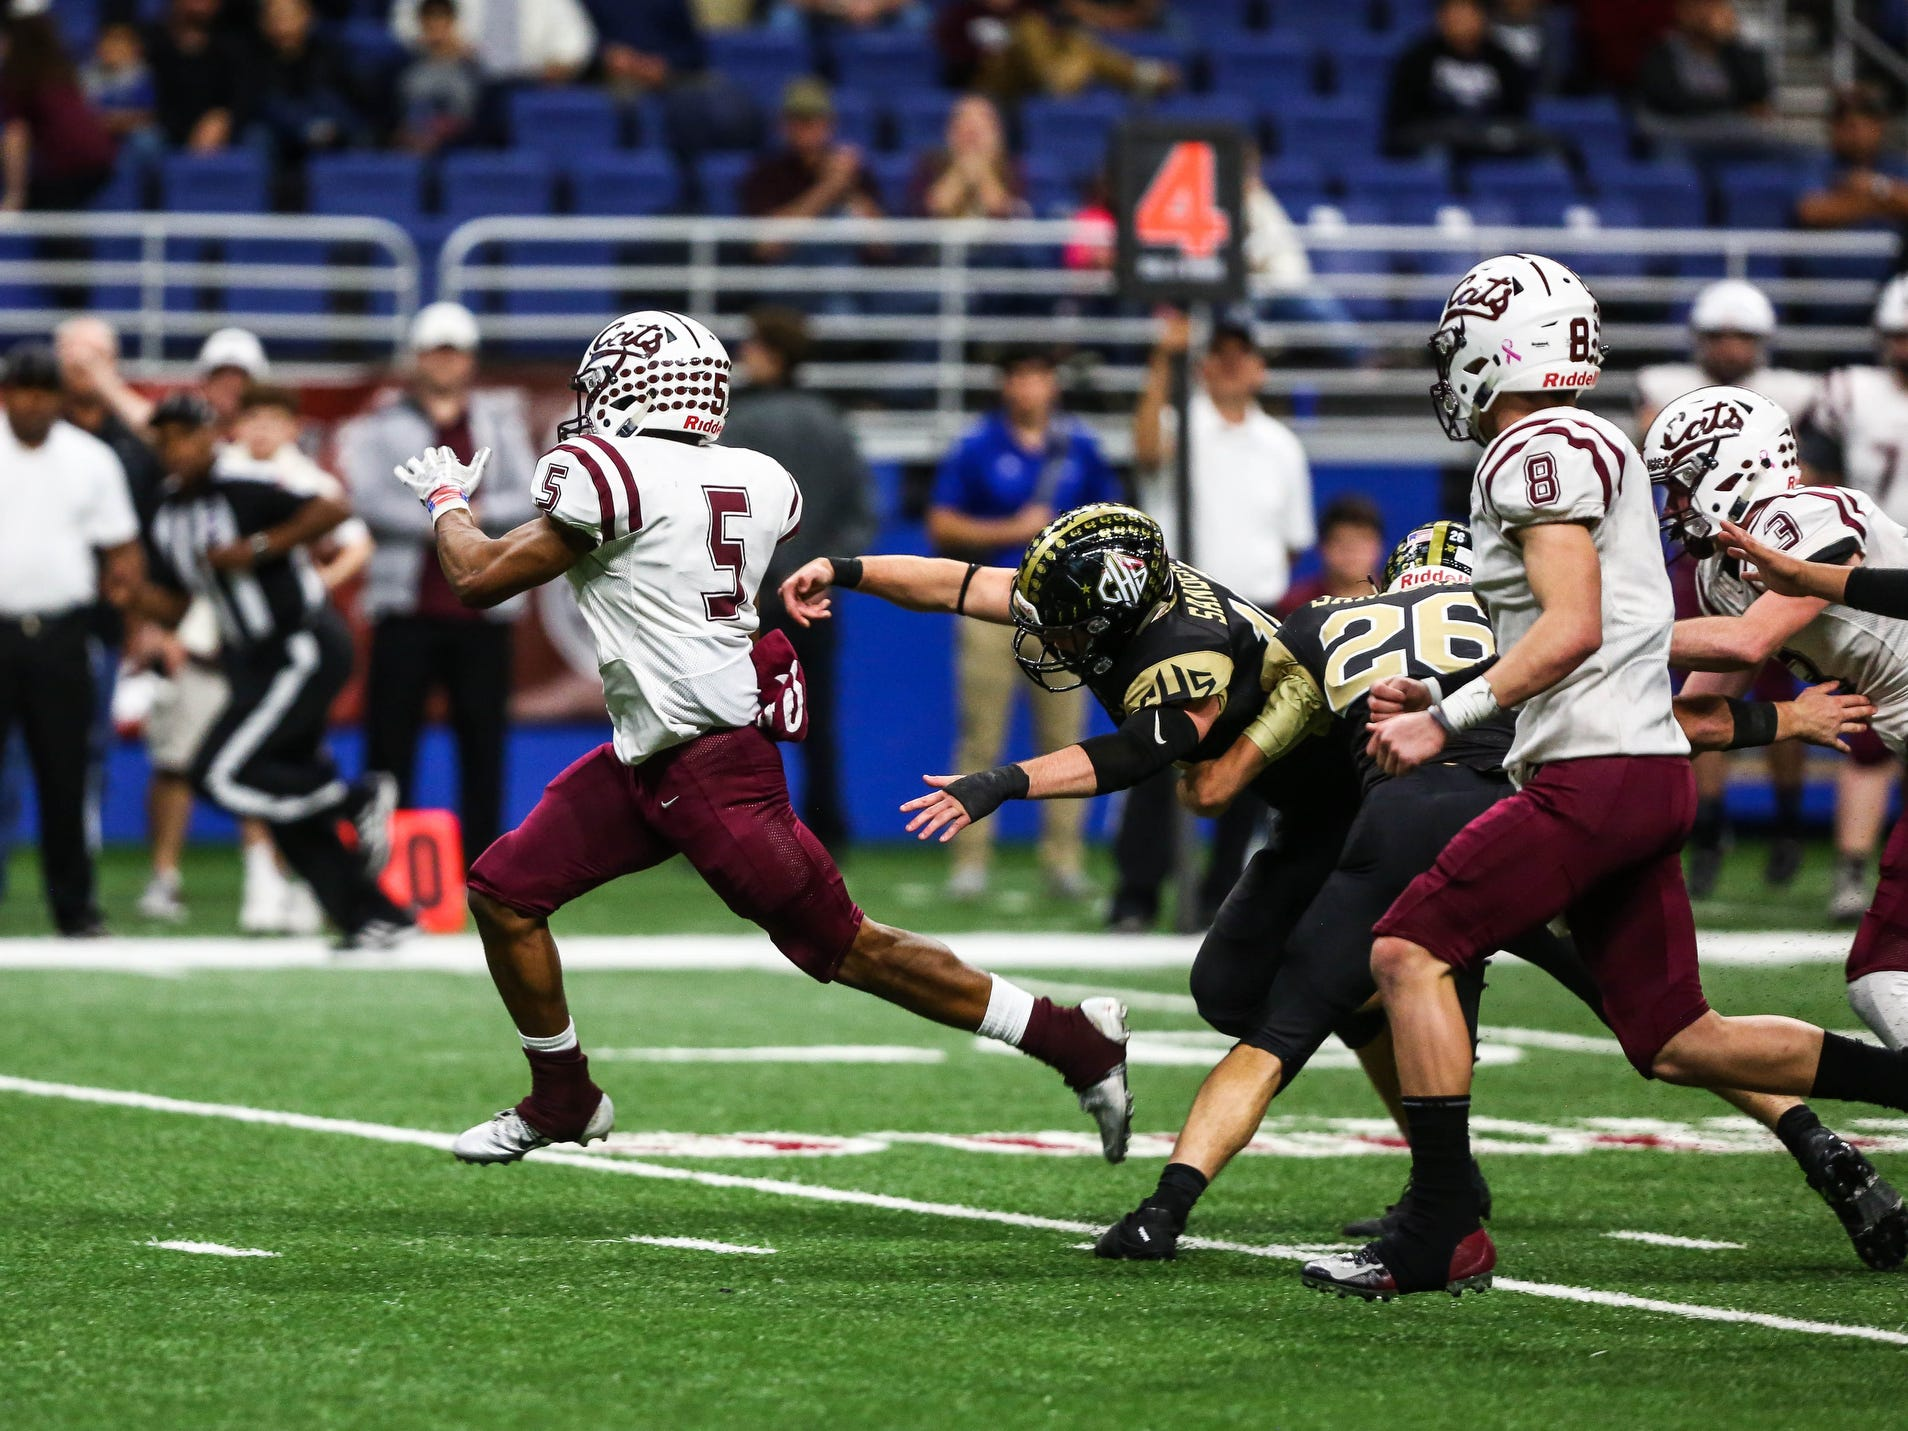 Calallen's Shenan Price runs the ball during Friday's game at the Alamodome.